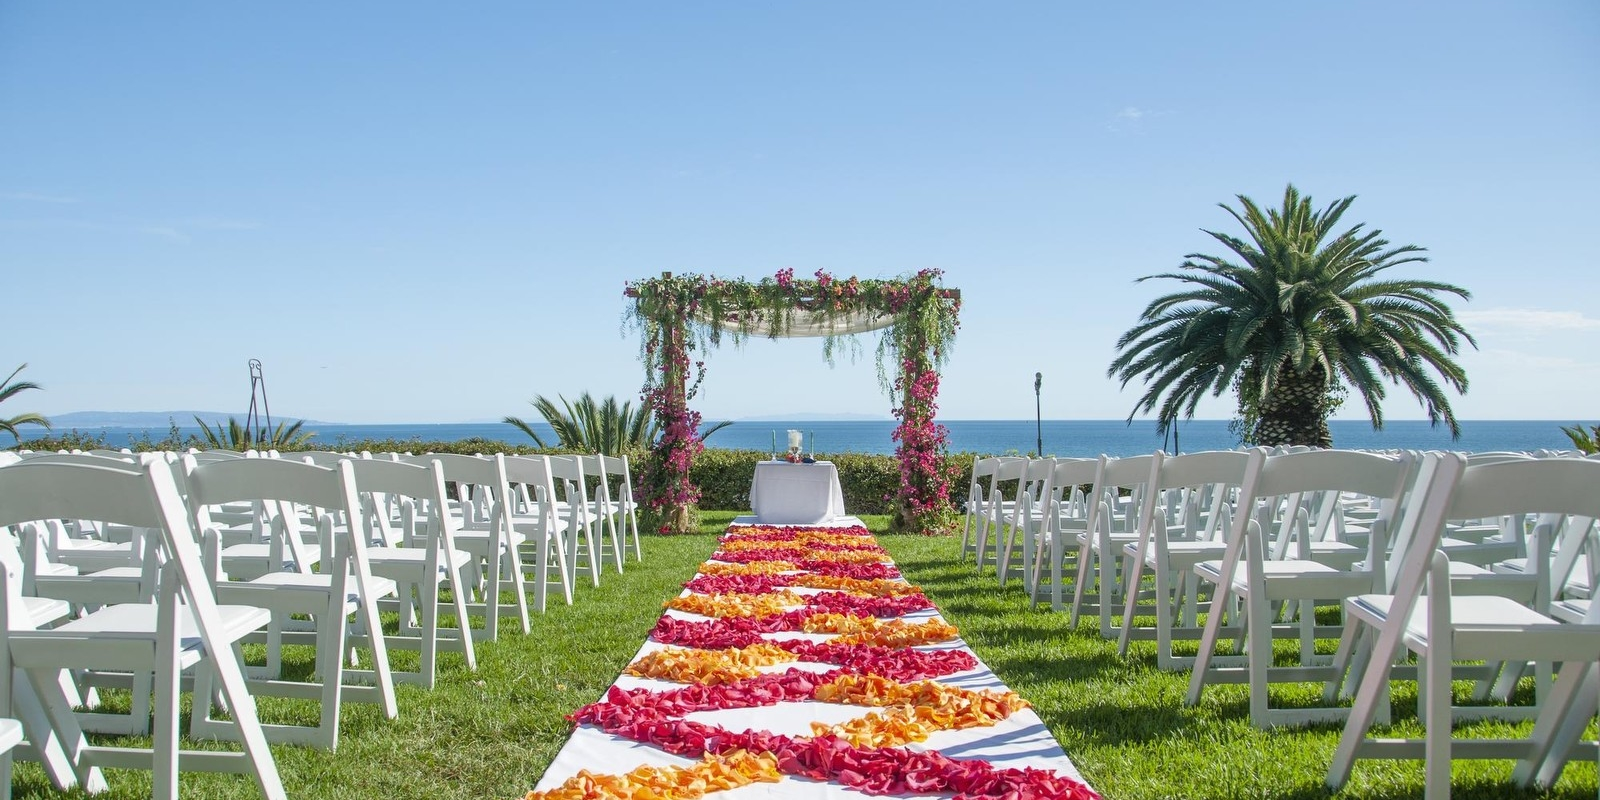 1 Among Malibu Wedding Venues Bel Air Bay Club